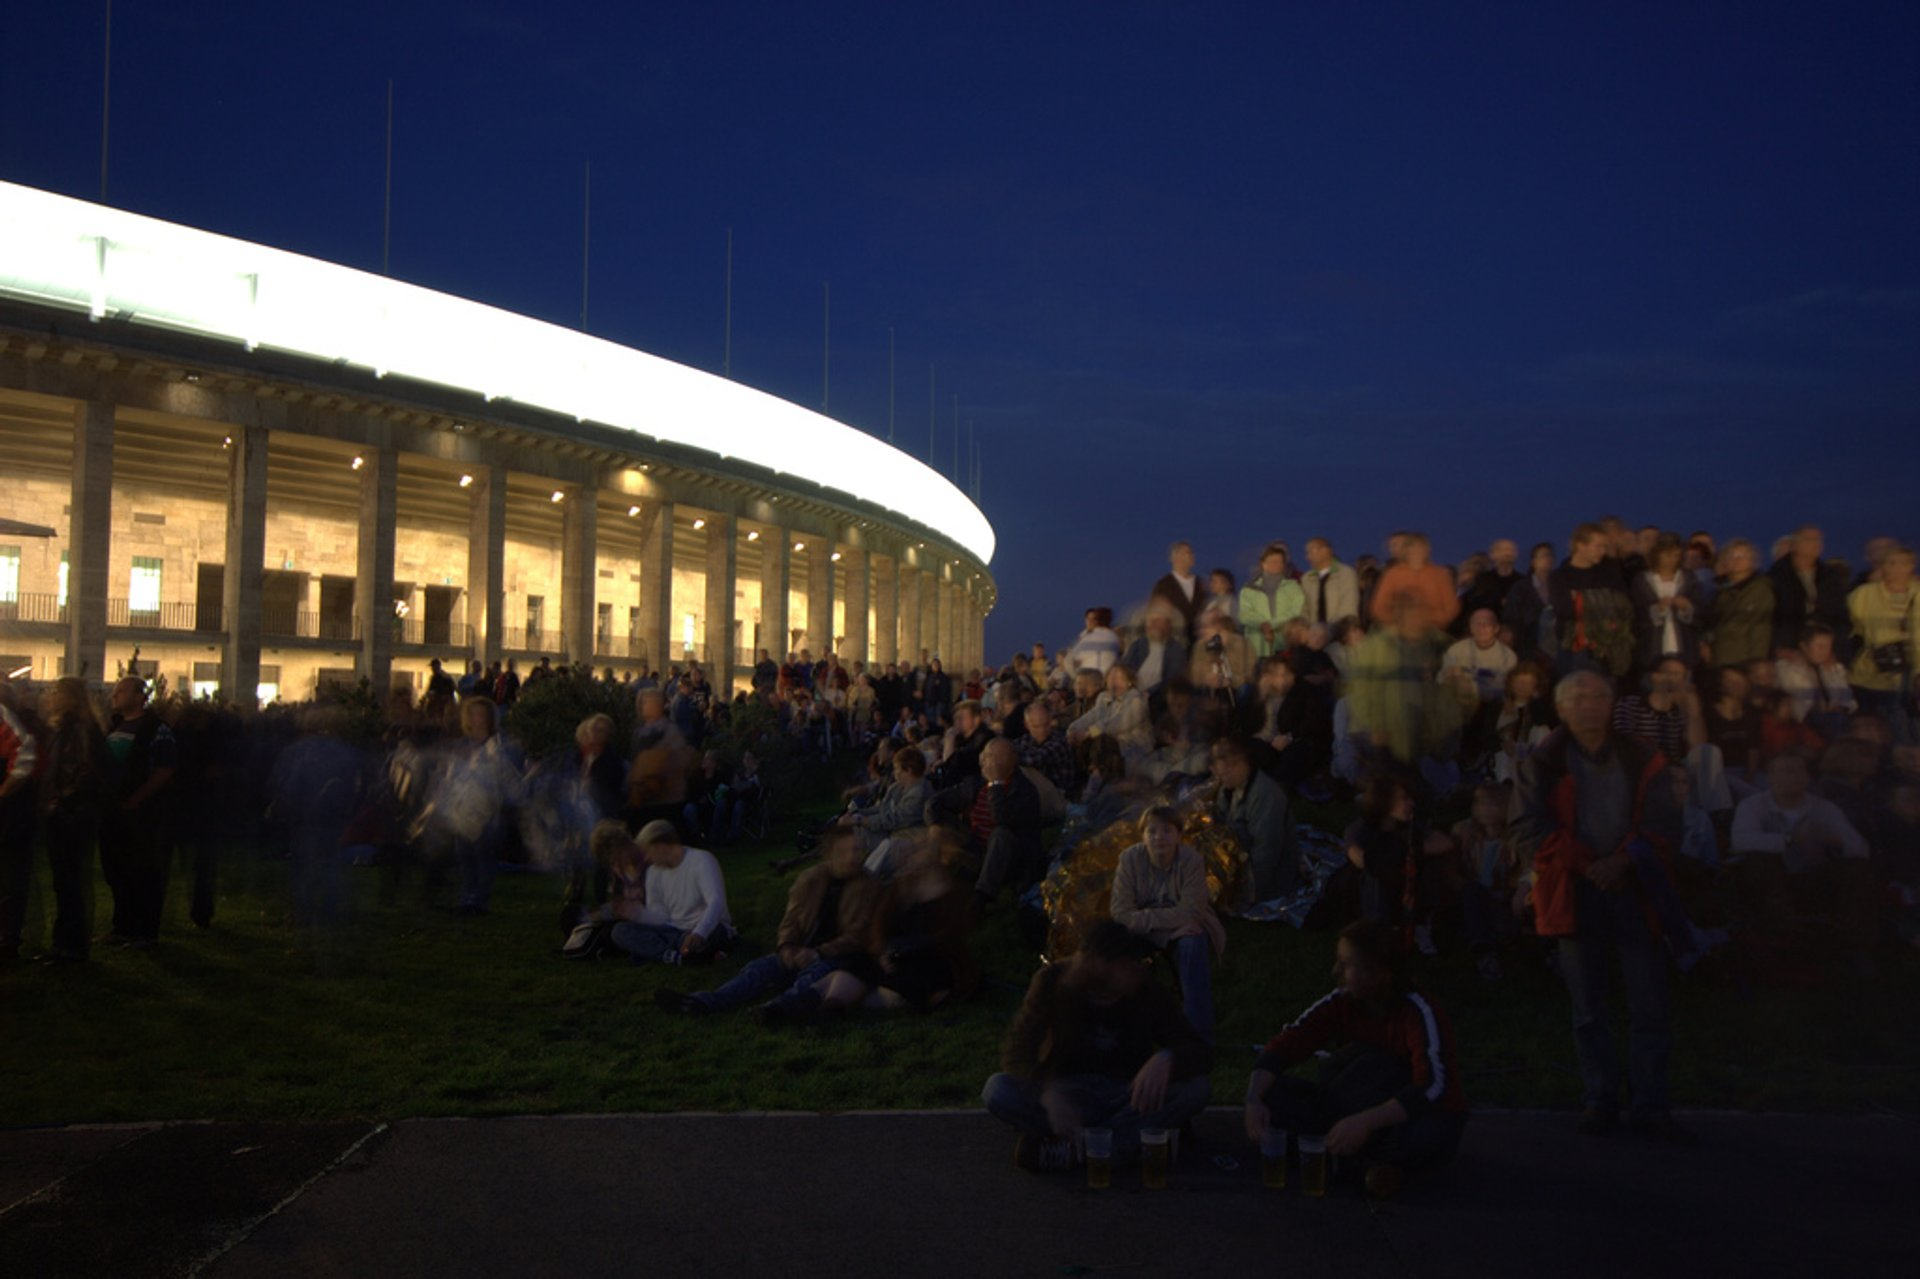 Crowd near the old Olympia Stadium in Berlin 2020